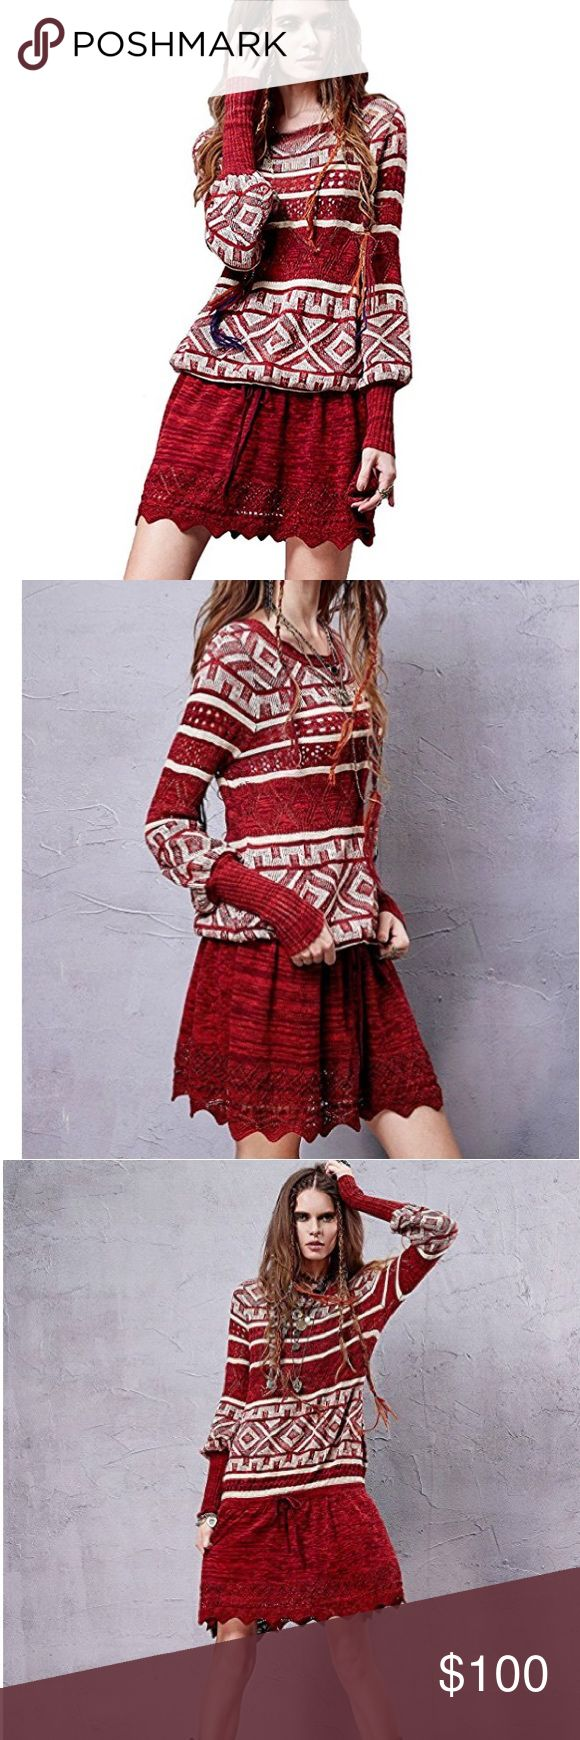 Red Sun Sweater Dress New Today! What are the Holidays without a red sweater? This style can be worn as either er a mini dress or as a tunic. Drawstring creates a blouses silhouette. One Size. Measurements in pictures. Please ask any questions before purchase. Thanks! 💙🌙🎩 Sweaters Crew & Scoop Necks